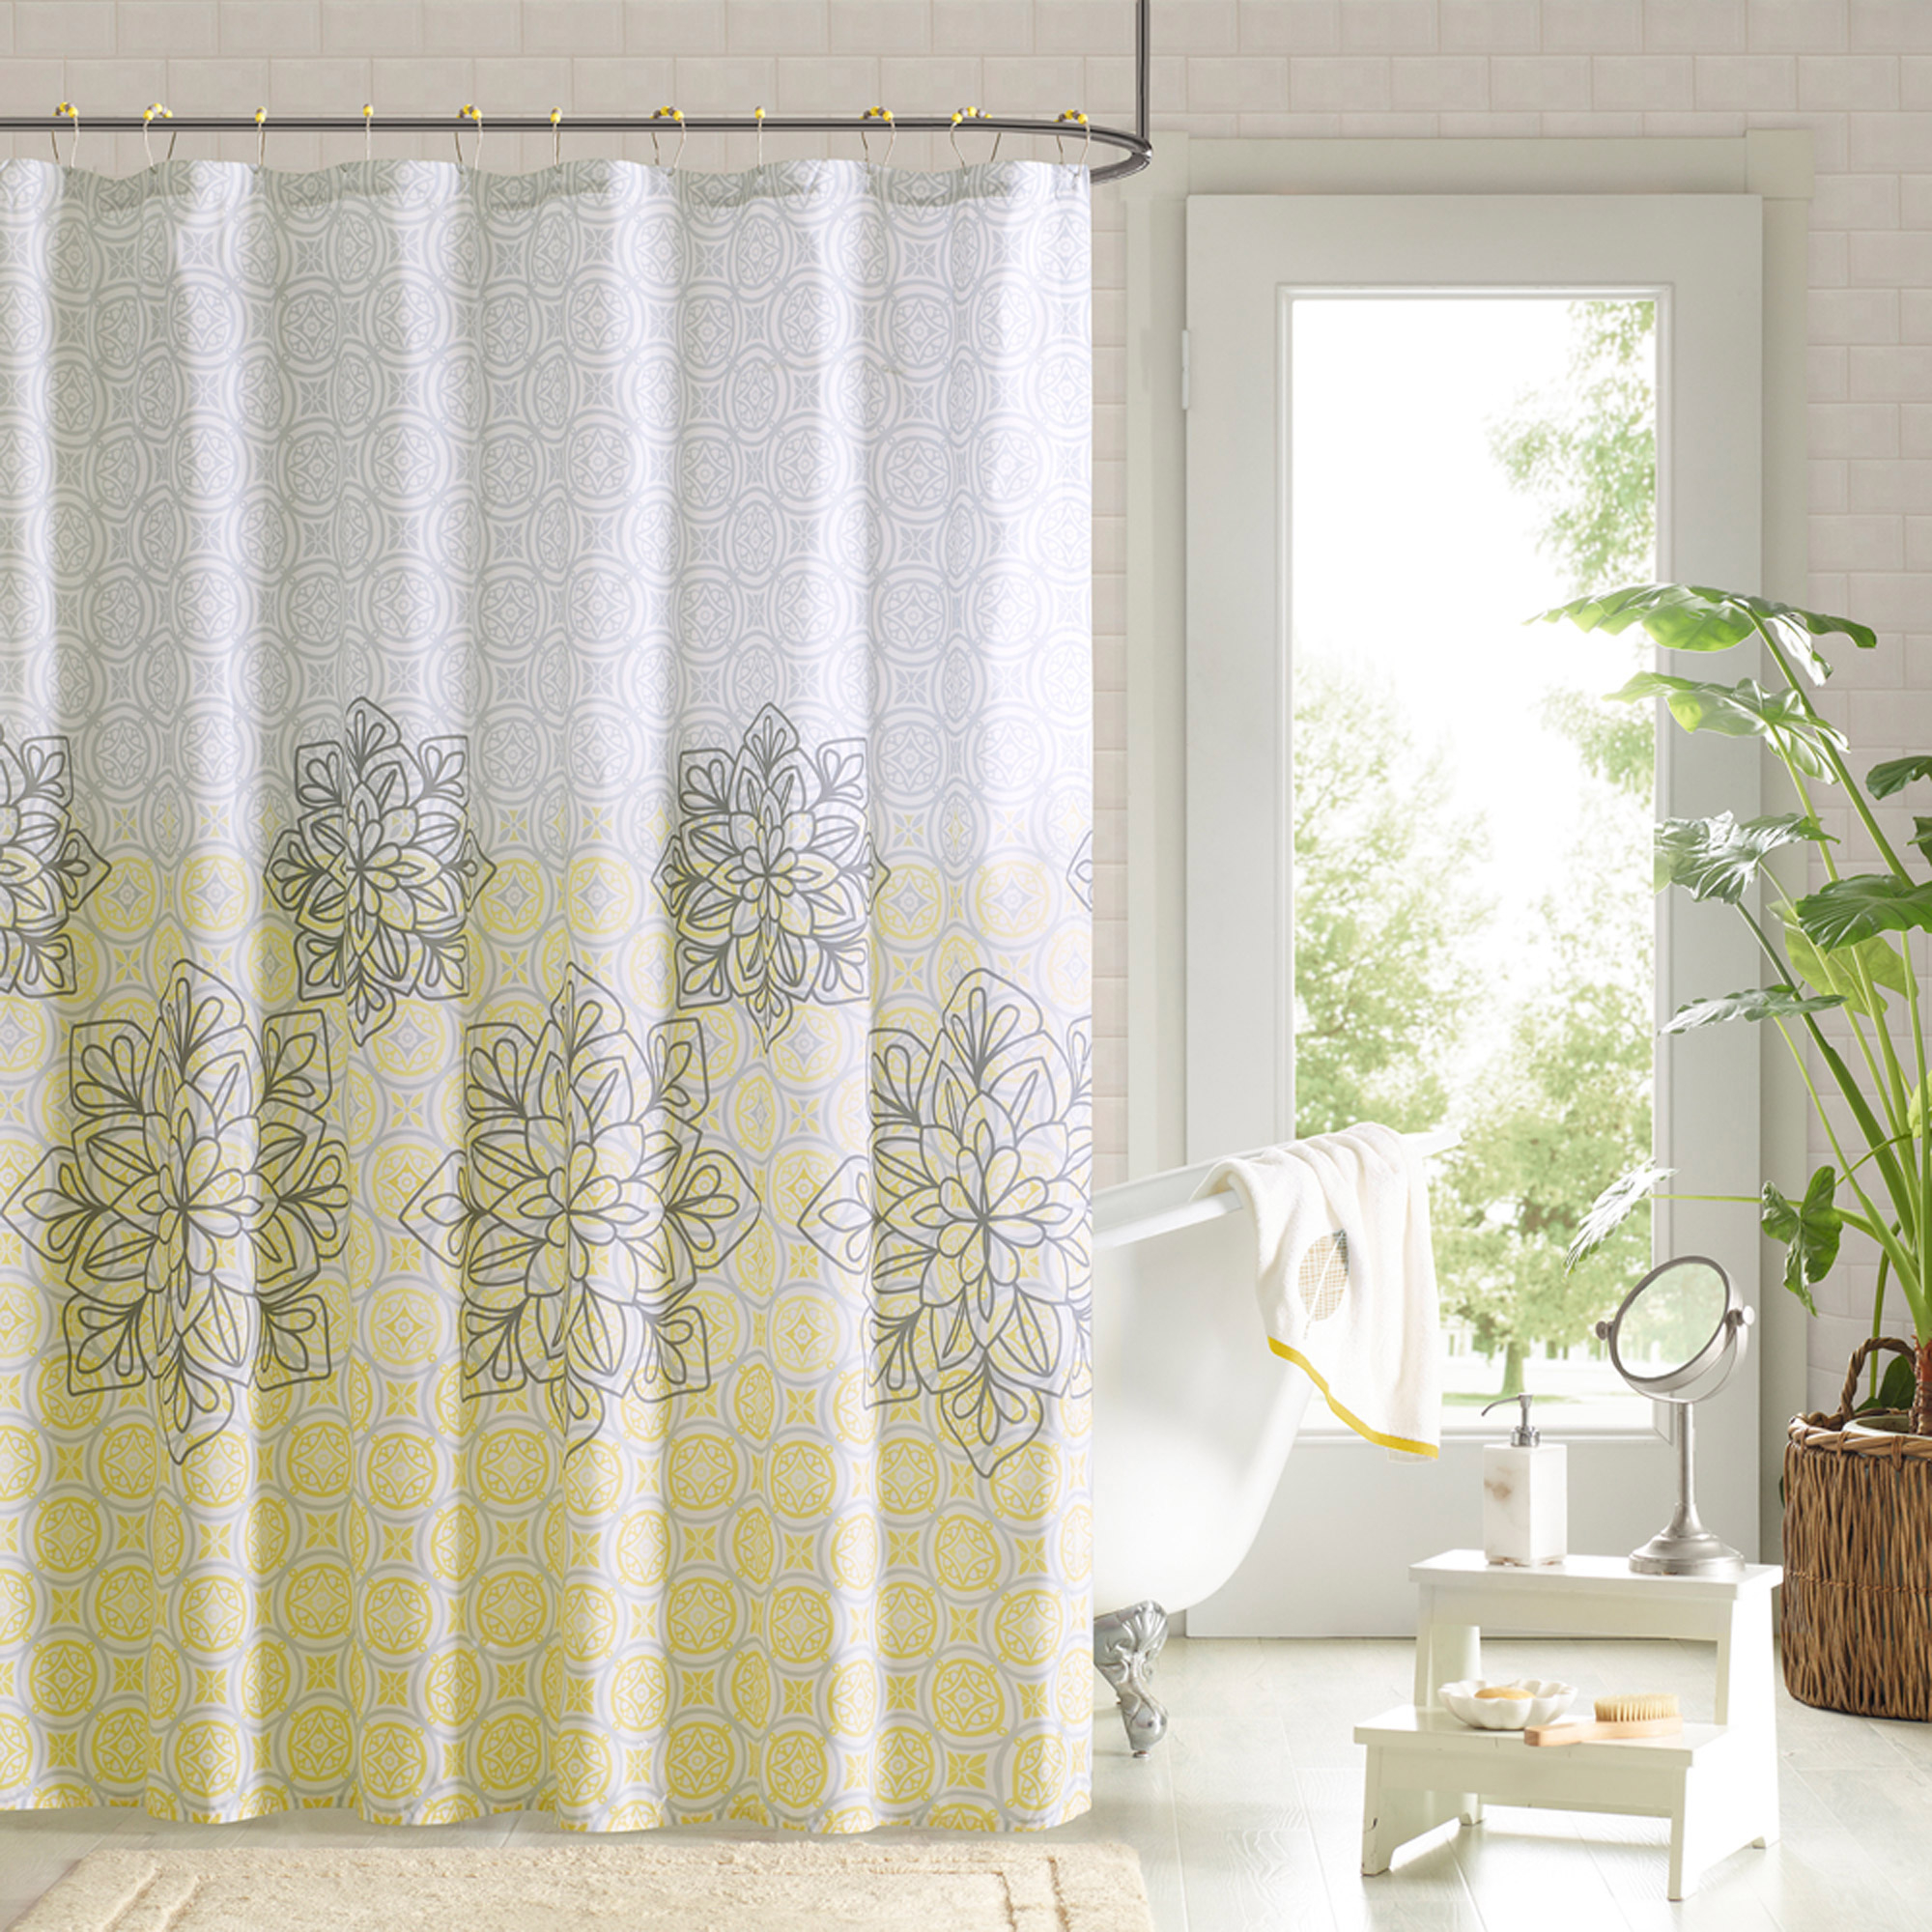 Captivating Yellow Shower Curtain Liner Contemporary Best regarding measurements 2000 X 2000